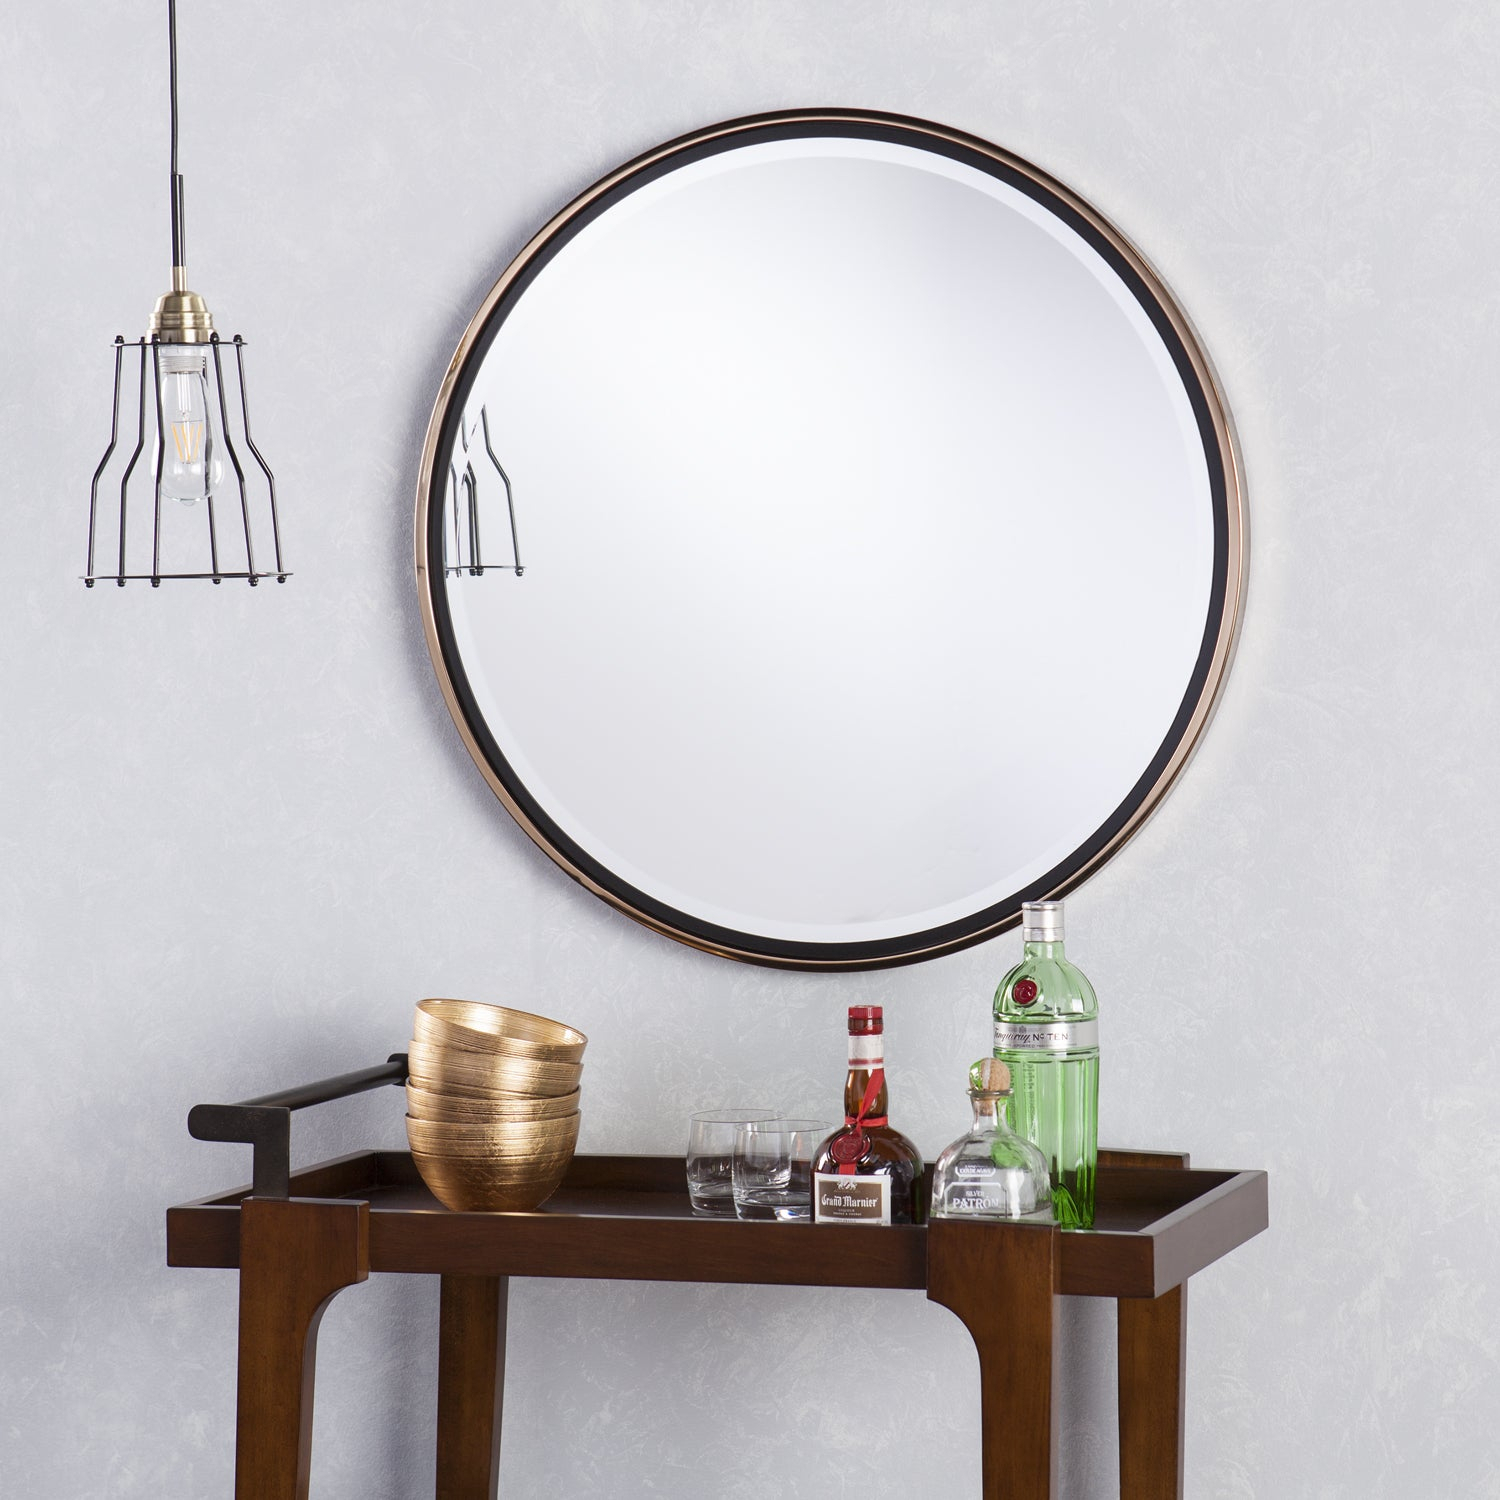 Round Mirrors | Shop Online At Overstock for Yedinak Modern Distressed Accent Mirrors (Image 19 of 30)